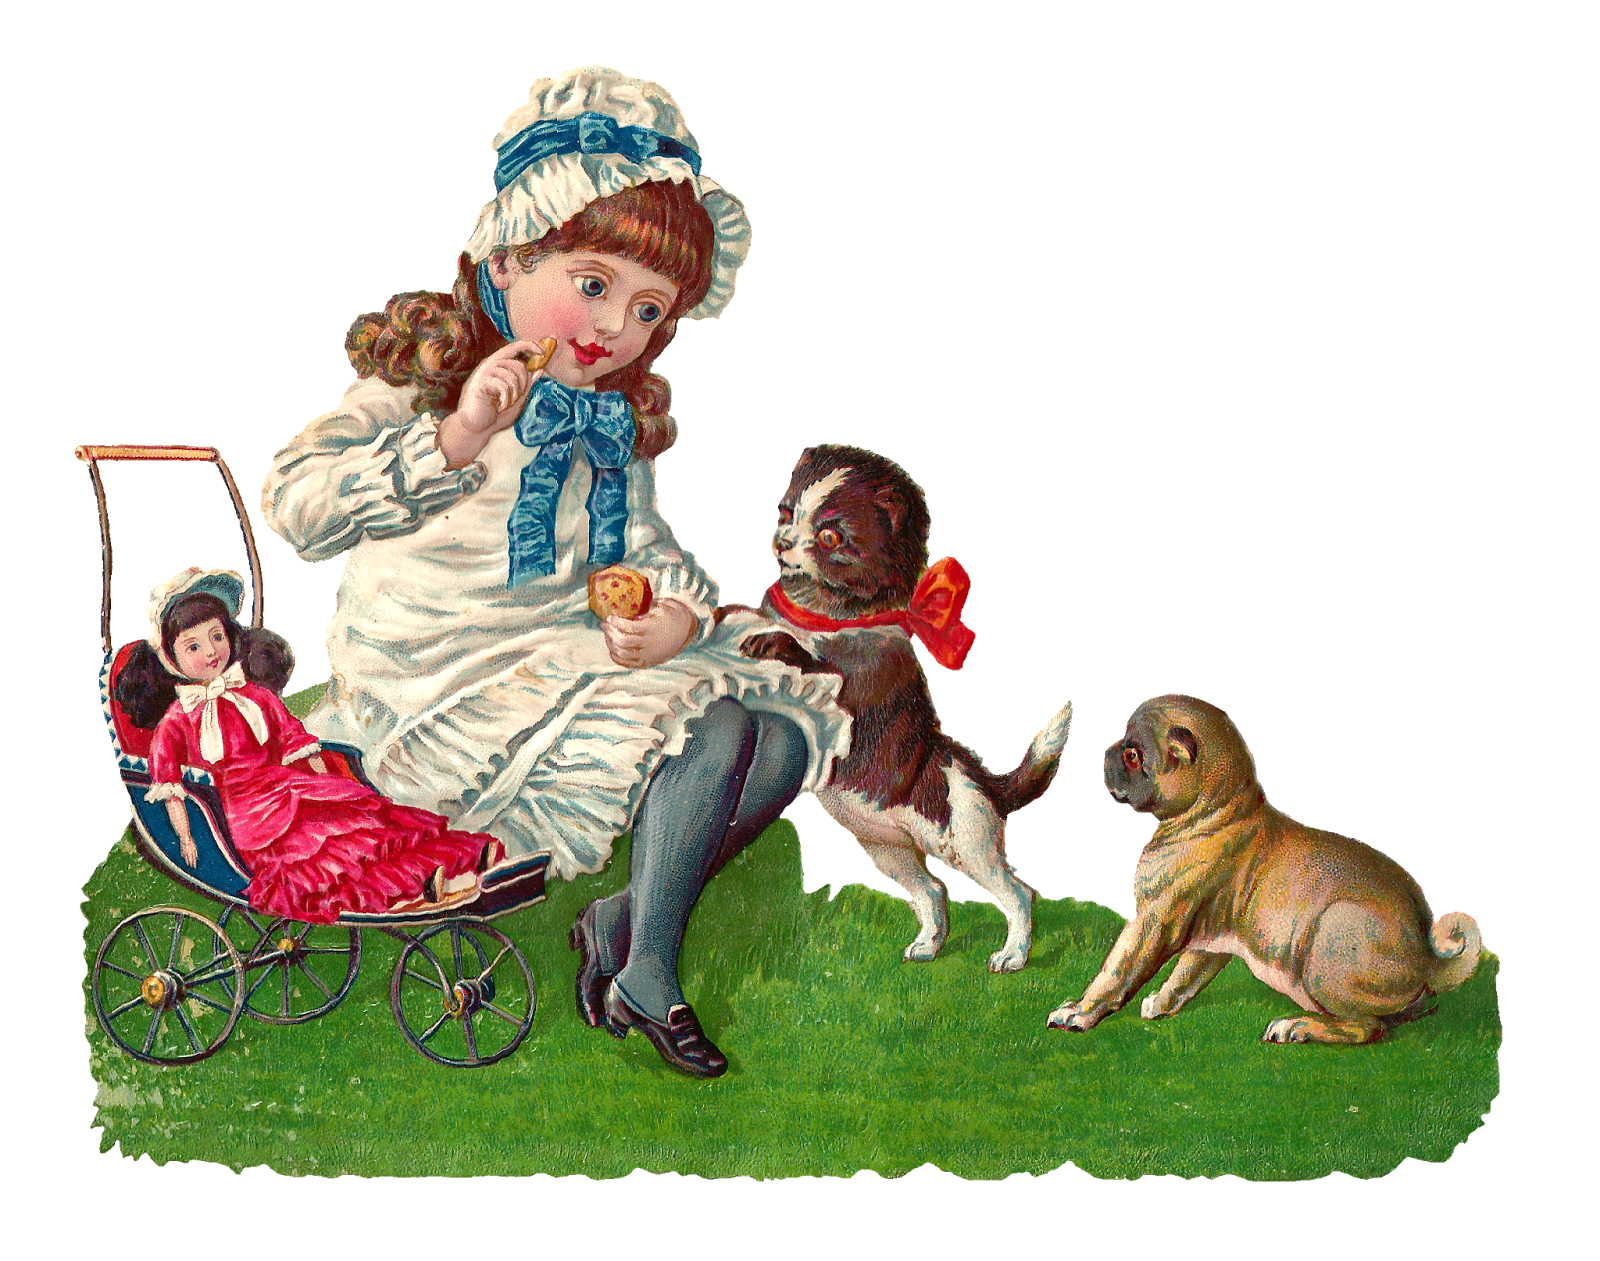 Girl feeding dog clipart banner freeuse download Antique Images: Girl Playing with Dogs and Doll Digital Clip Art banner freeuse download